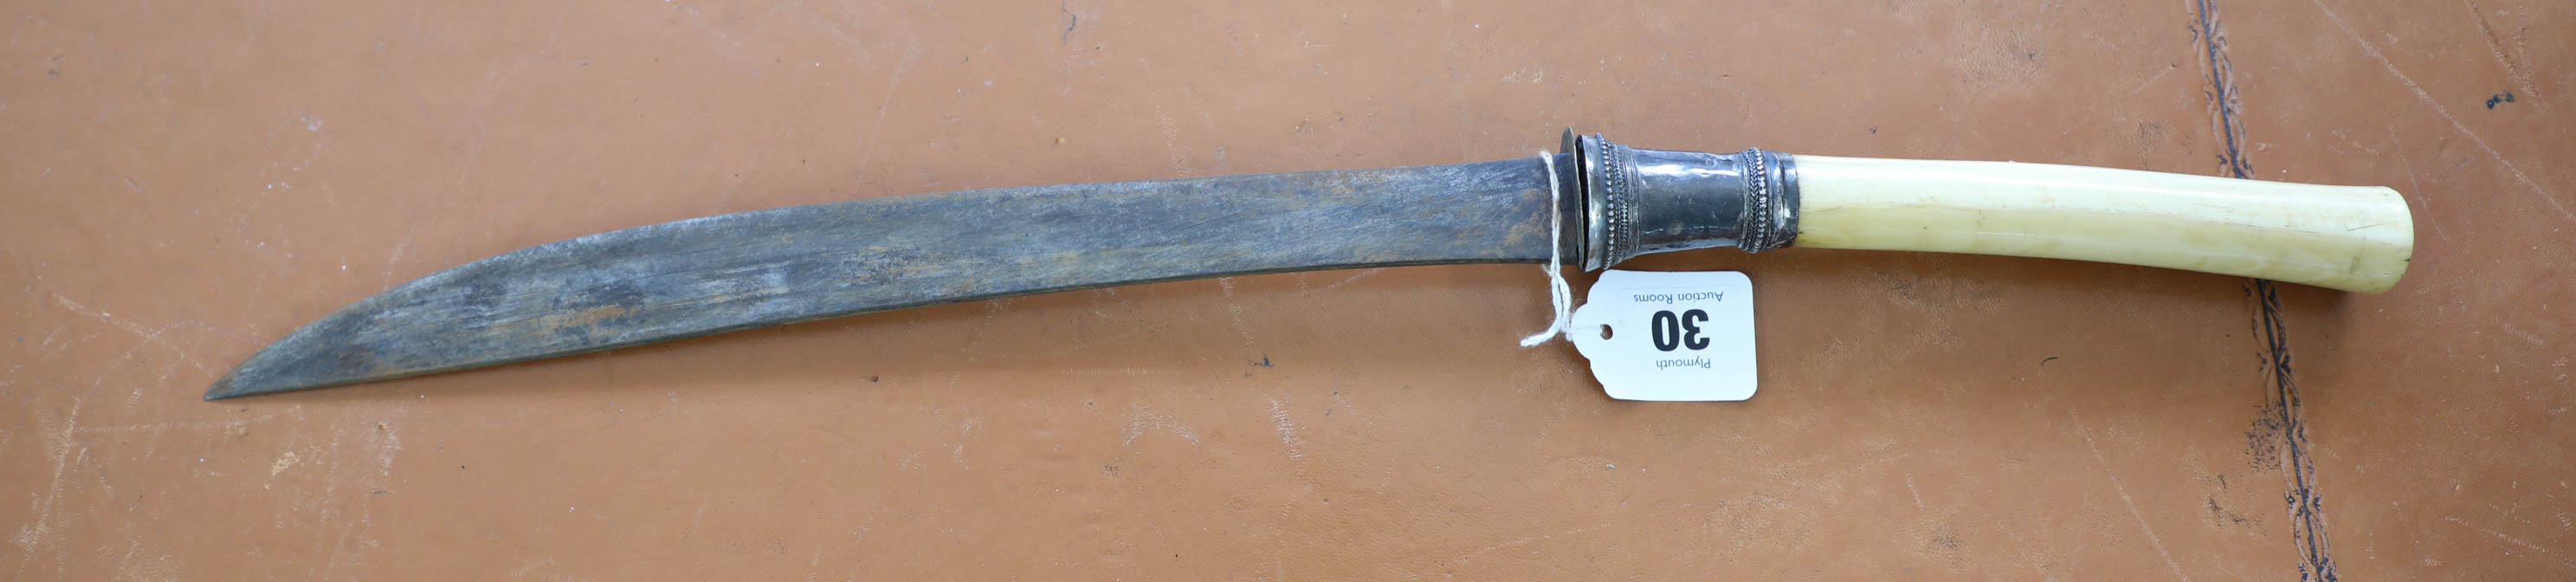 Lot 030 - A 19th century Burmese sword Dha, having slightly curved single edge blade swollen to tip, silver